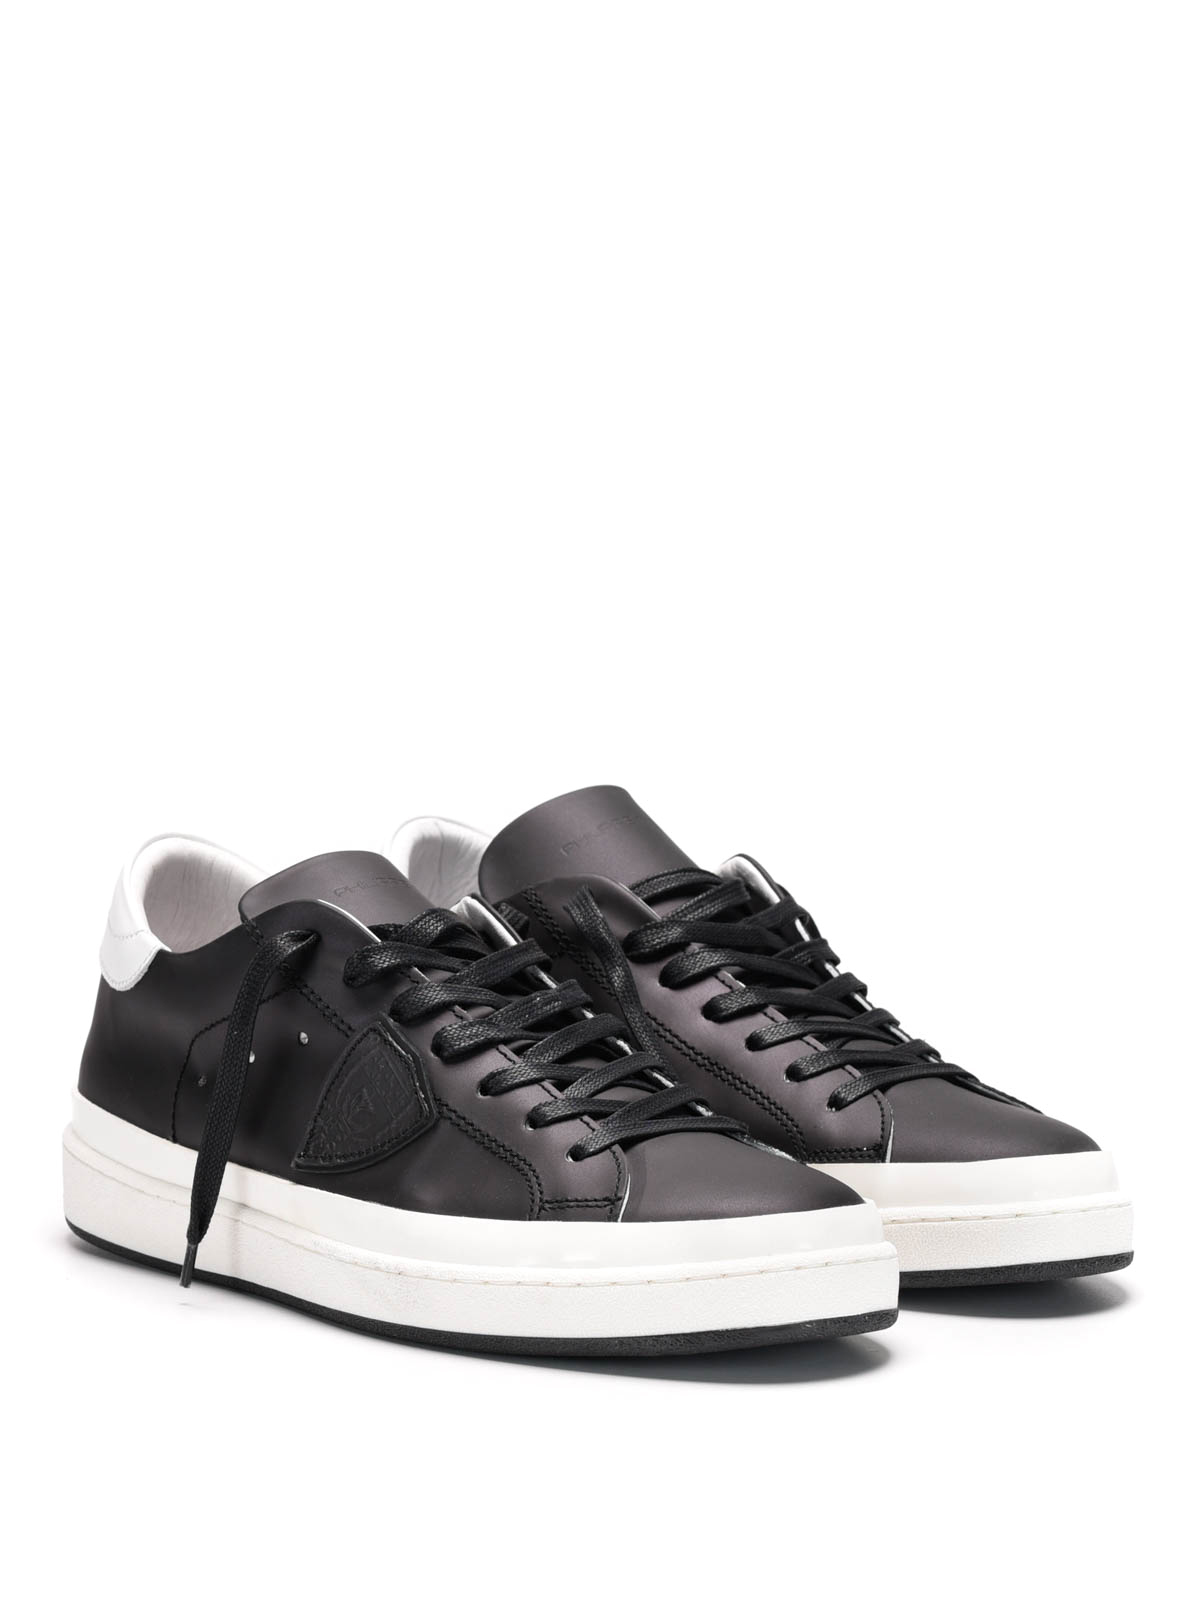 Philippe model Low Trainers xm3aVJ